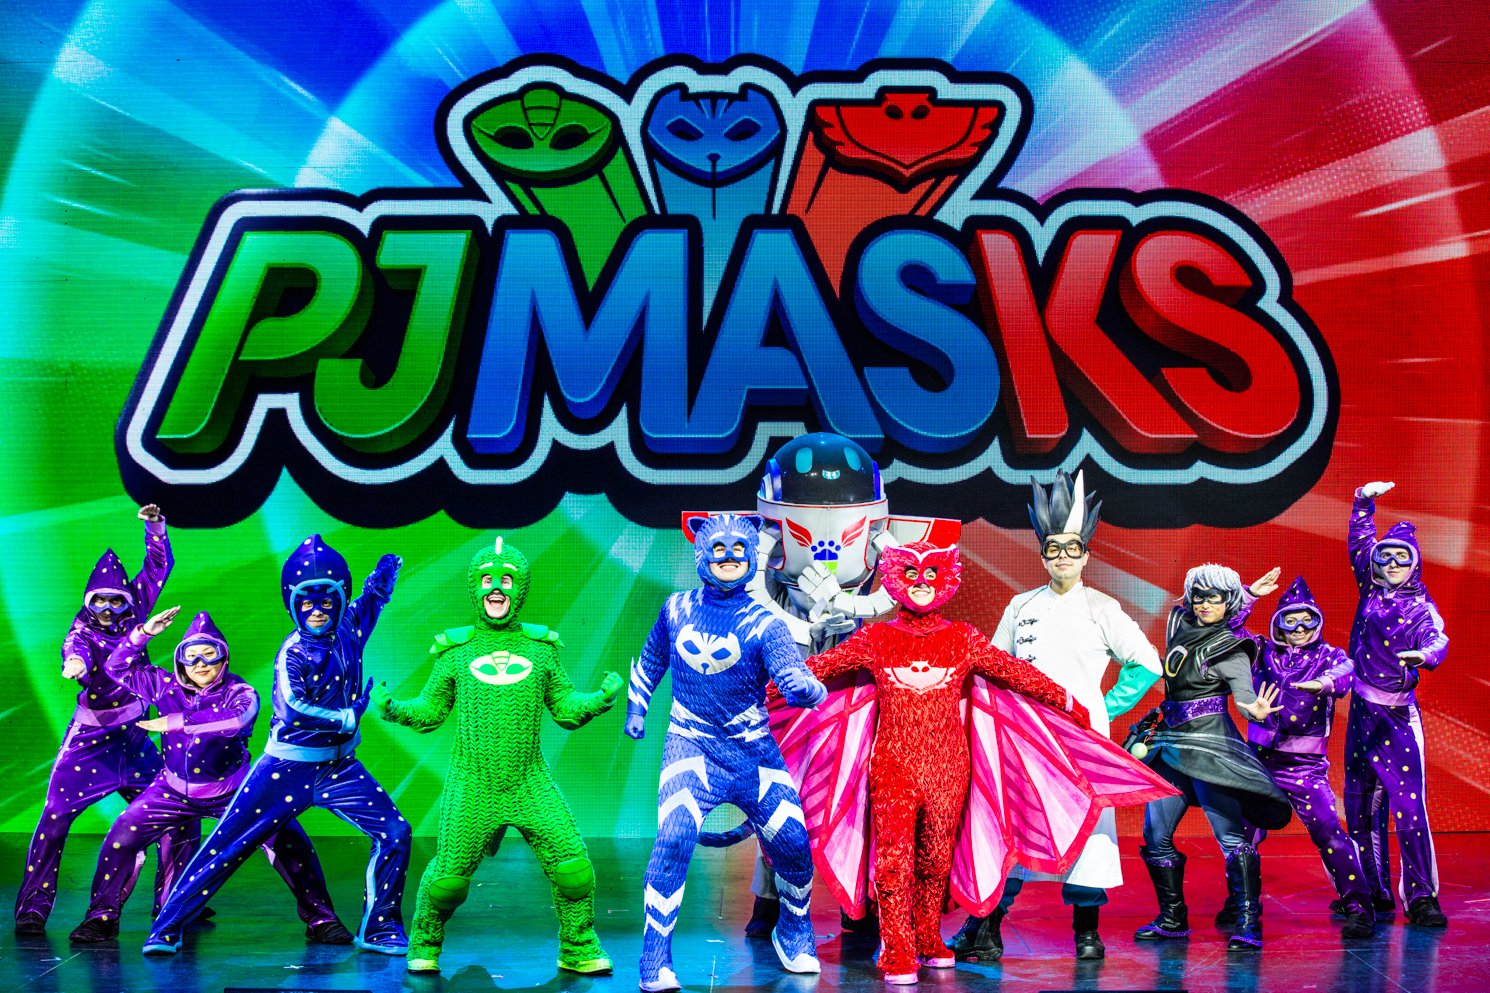 PJ MASKS LIVE Tour Dates For 2019 and A Family 4-pack Ticket